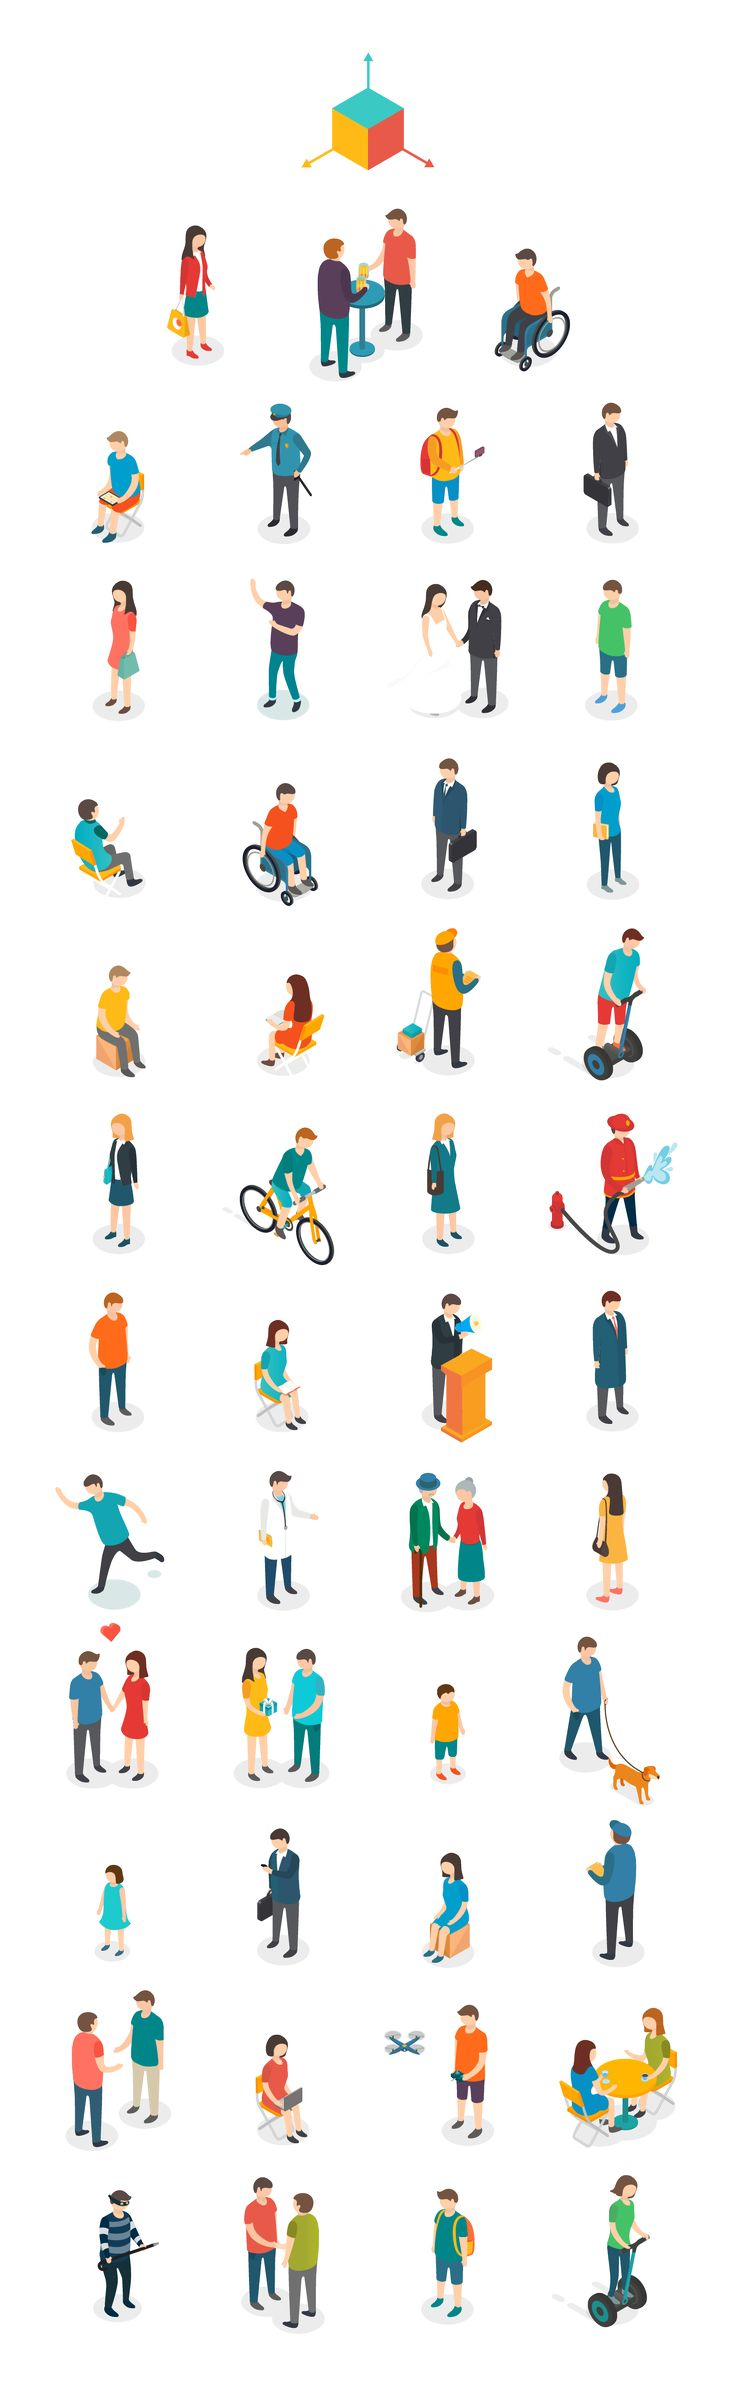 Isometric People on Behance